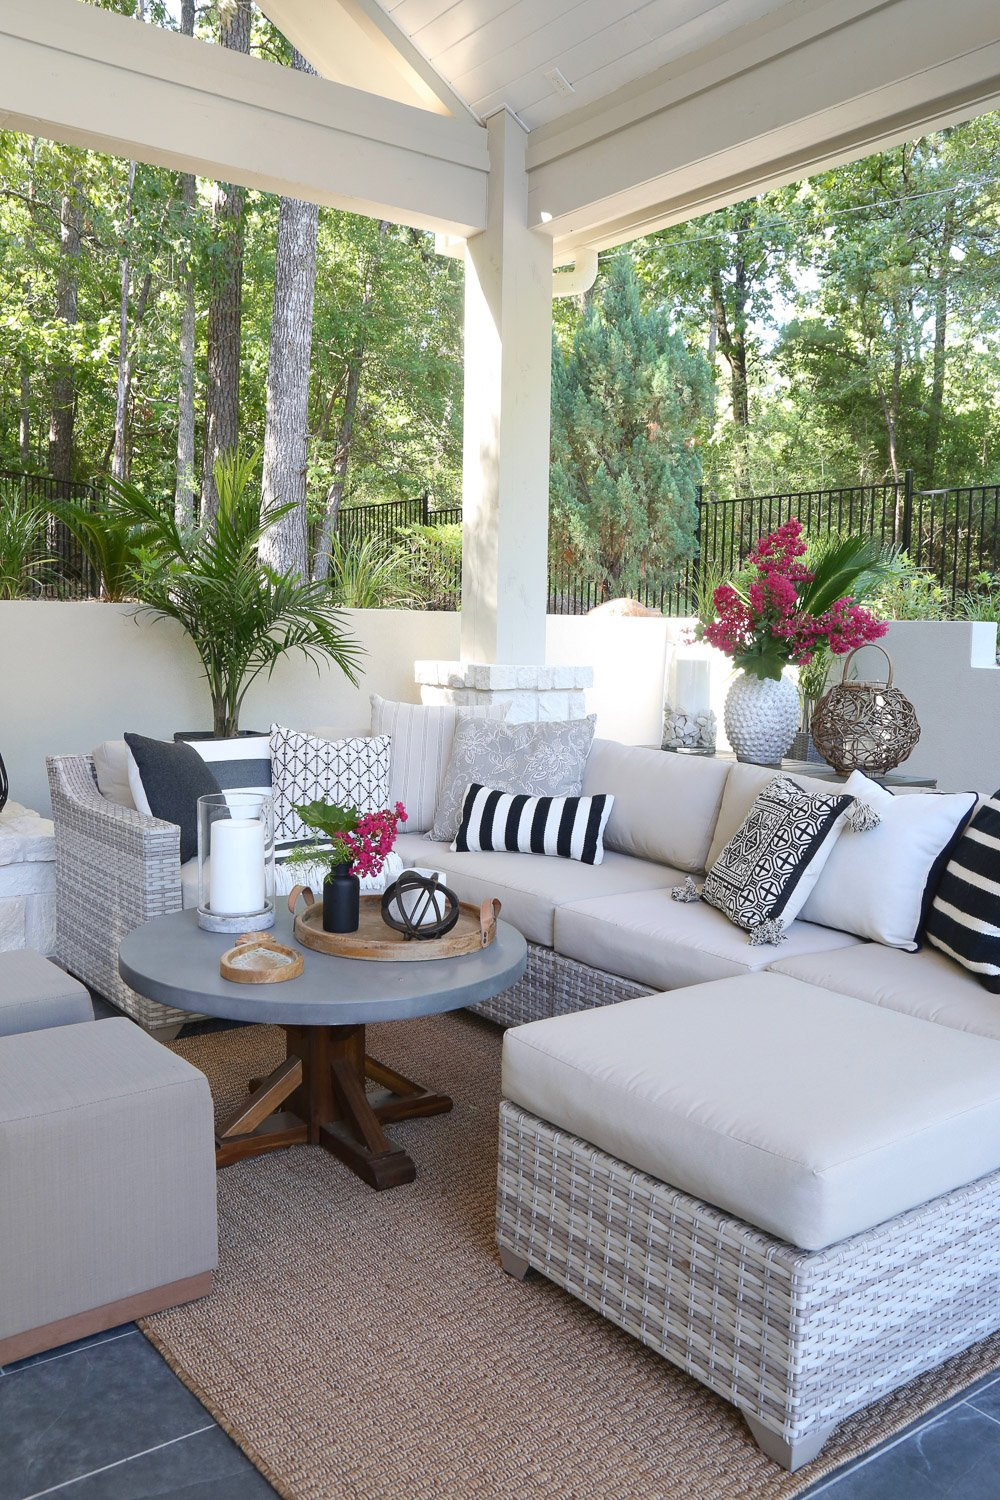 Outdoor patio with plants and pillows.